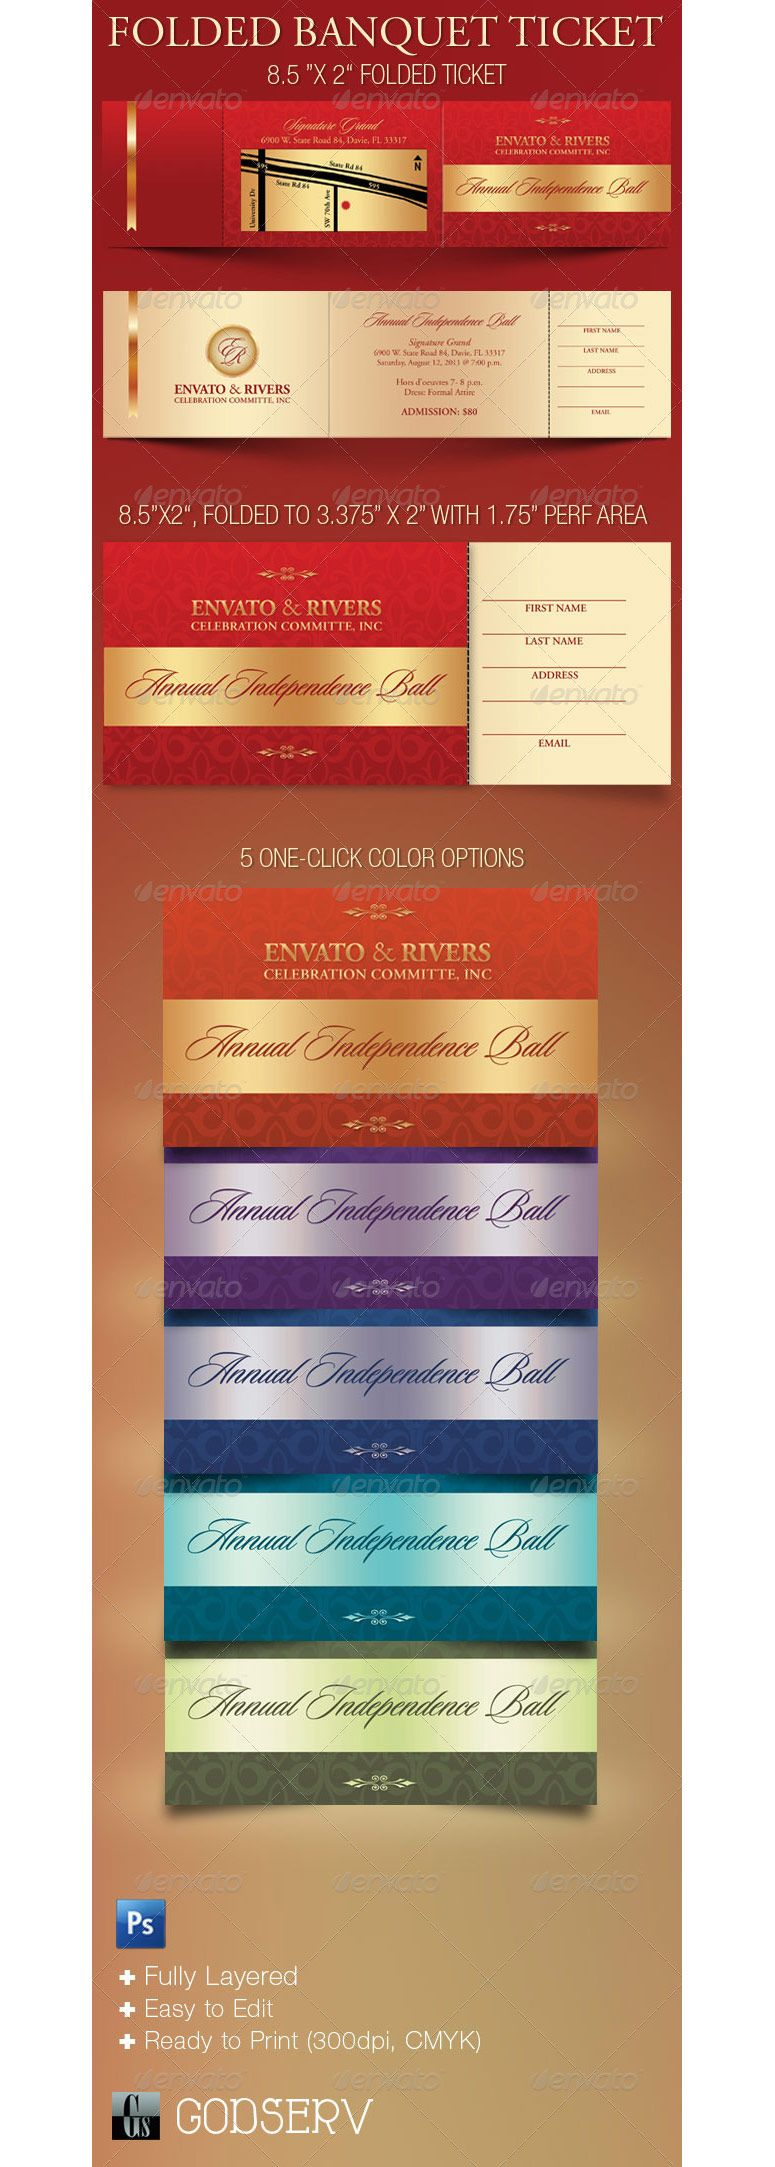 folded banquet ticket folded banquet ticket template psdbucket